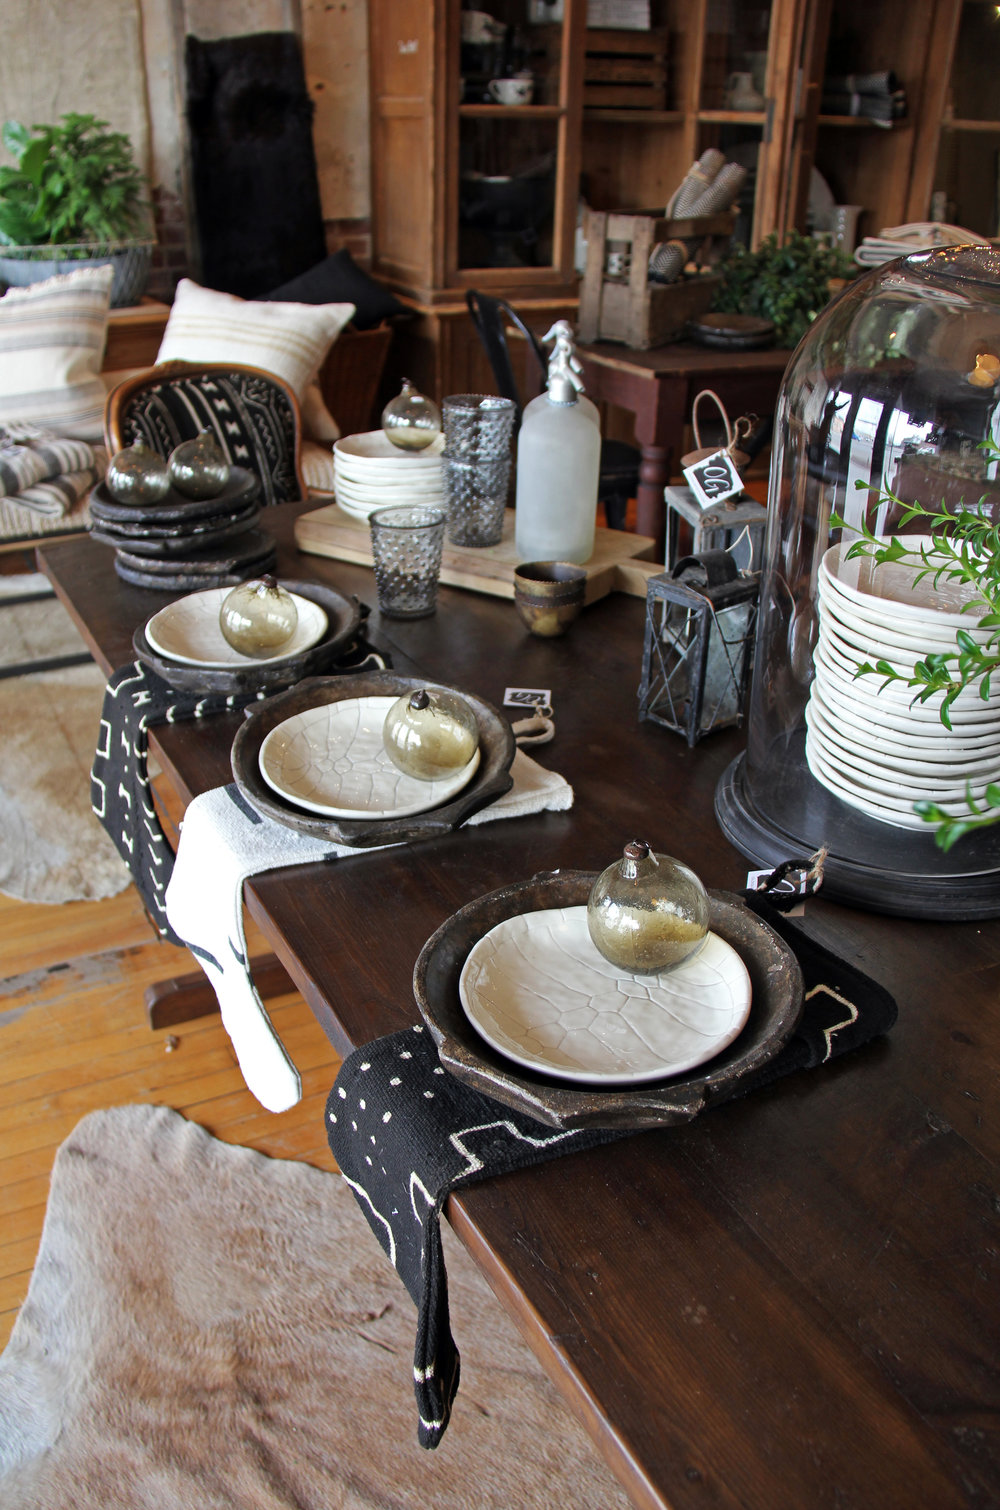 Tortoise shell plates for a festive and fun table setting, complete with chargers, hobnail glasses, antique European lanterns, and old frosted seltzer bottles!